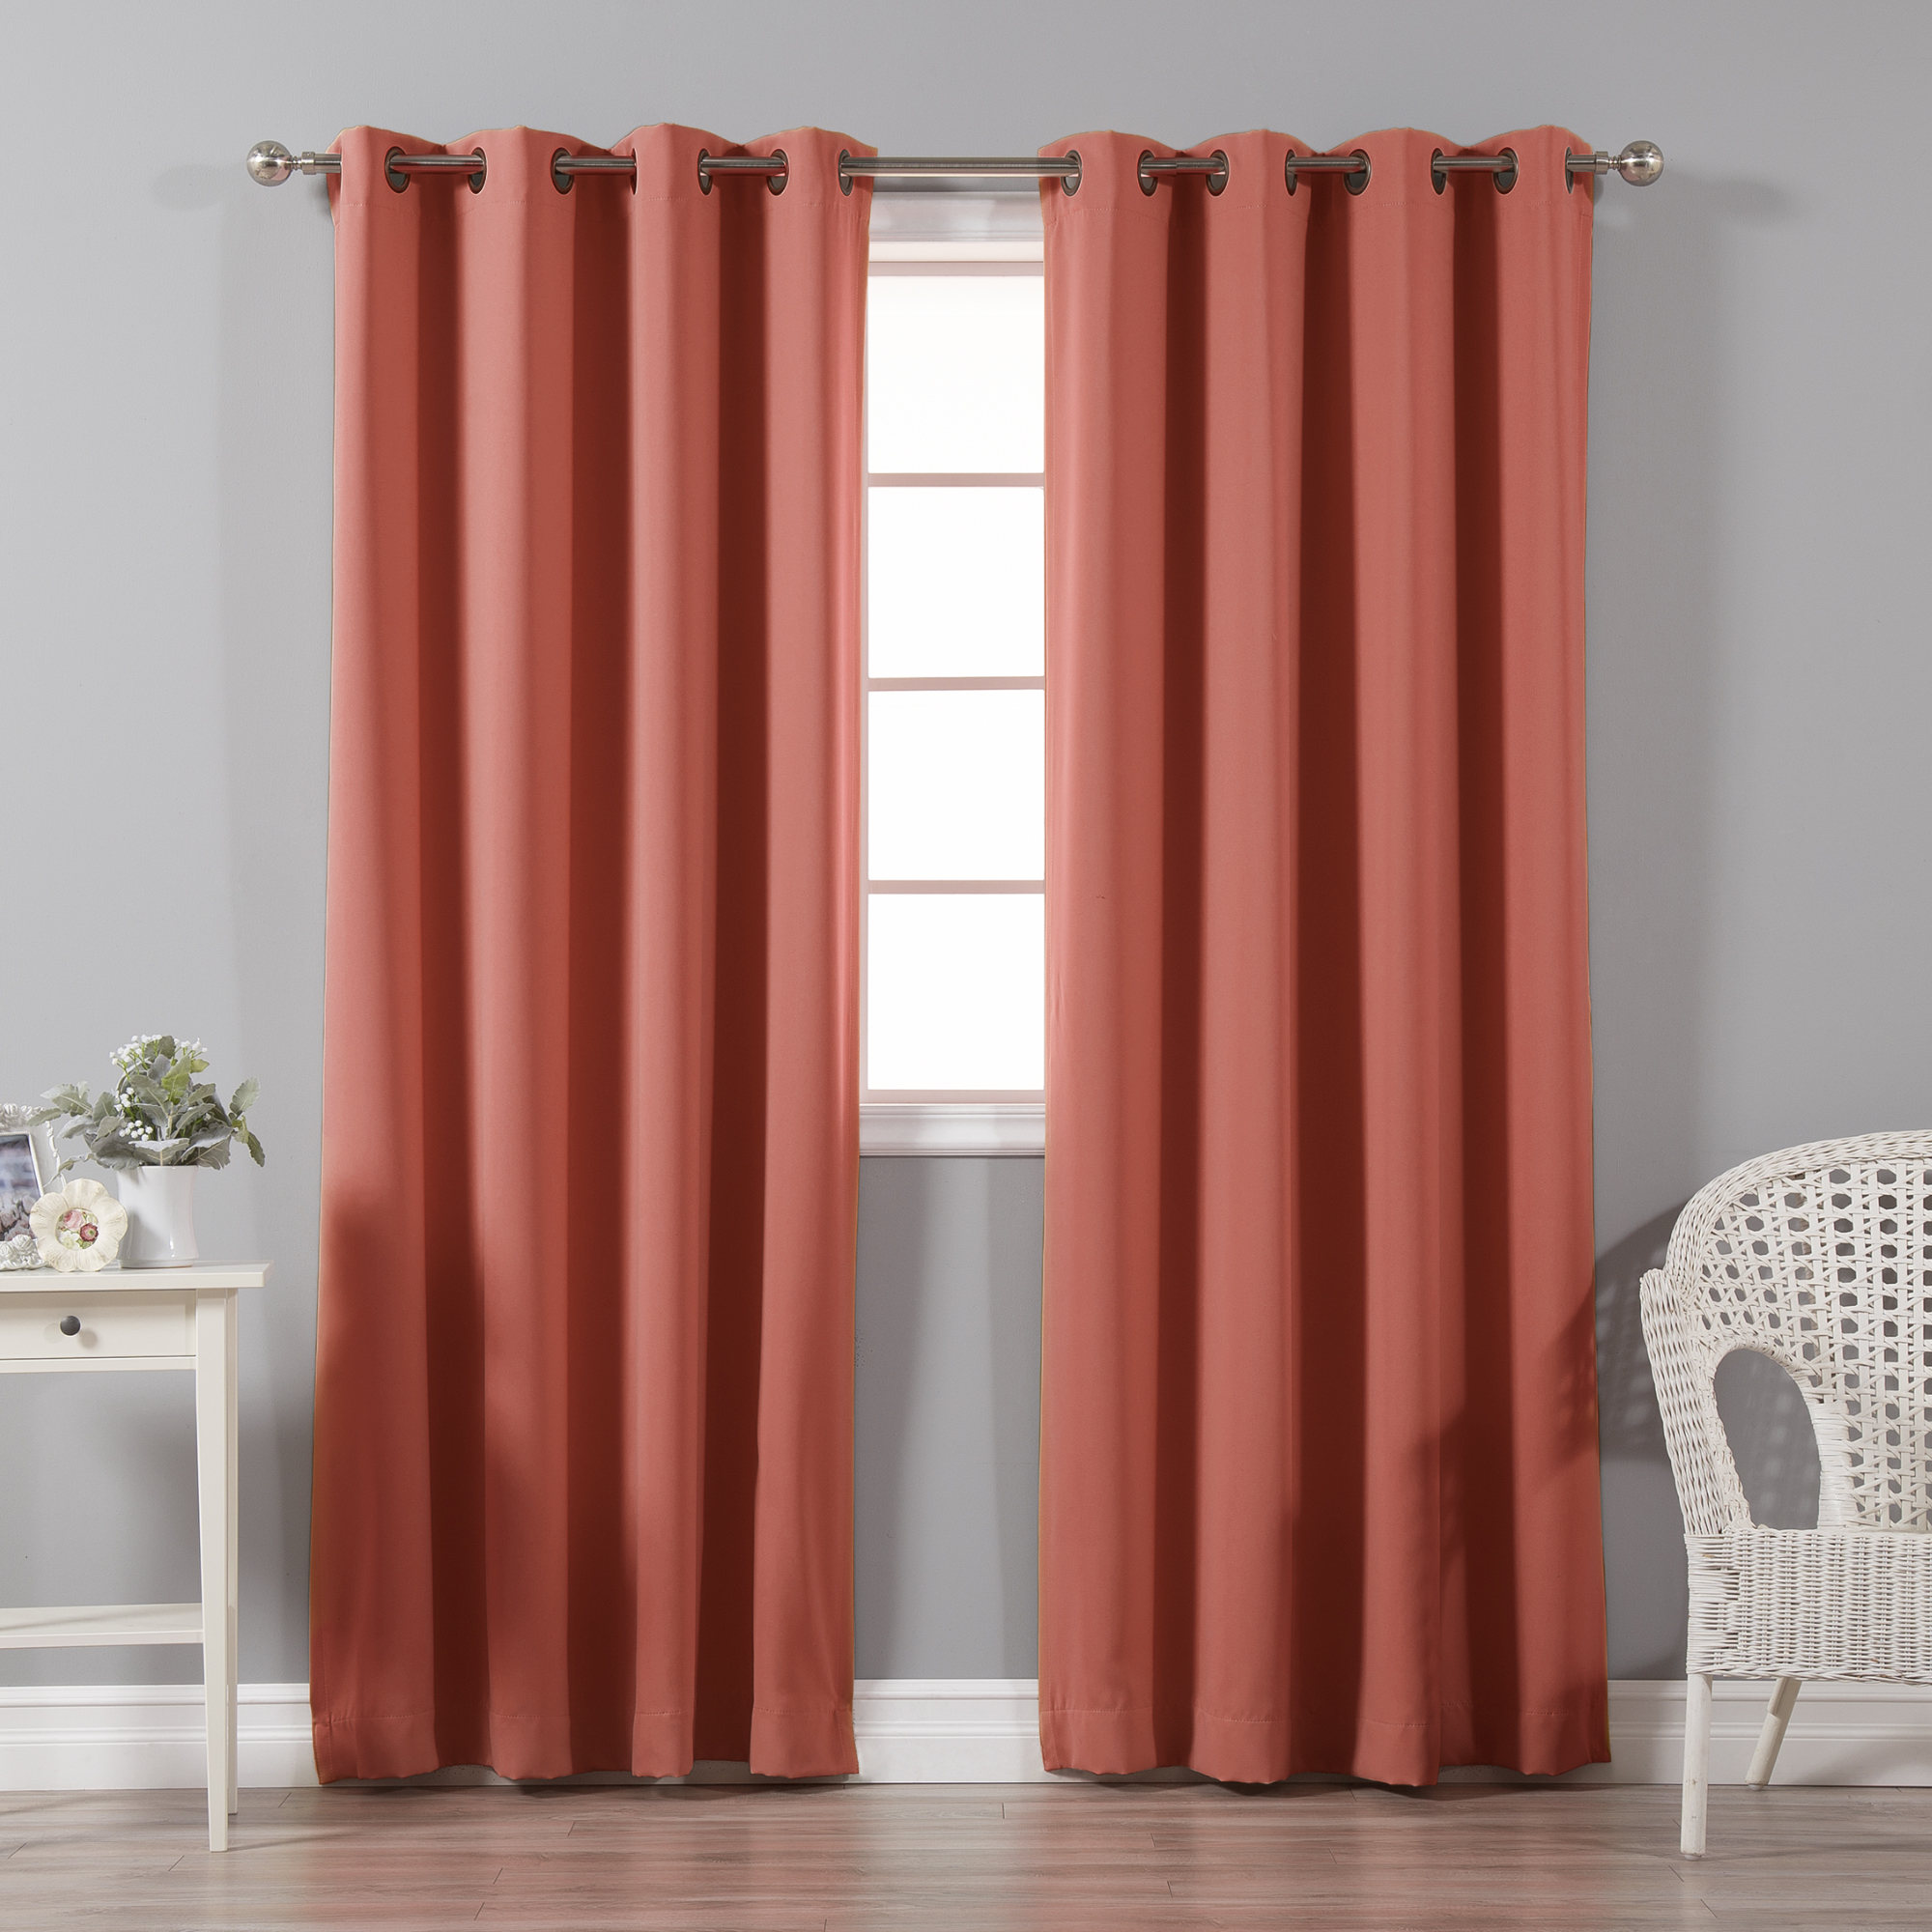 quality home basic thermal blackout curtains antique bronze grommet top brick set of